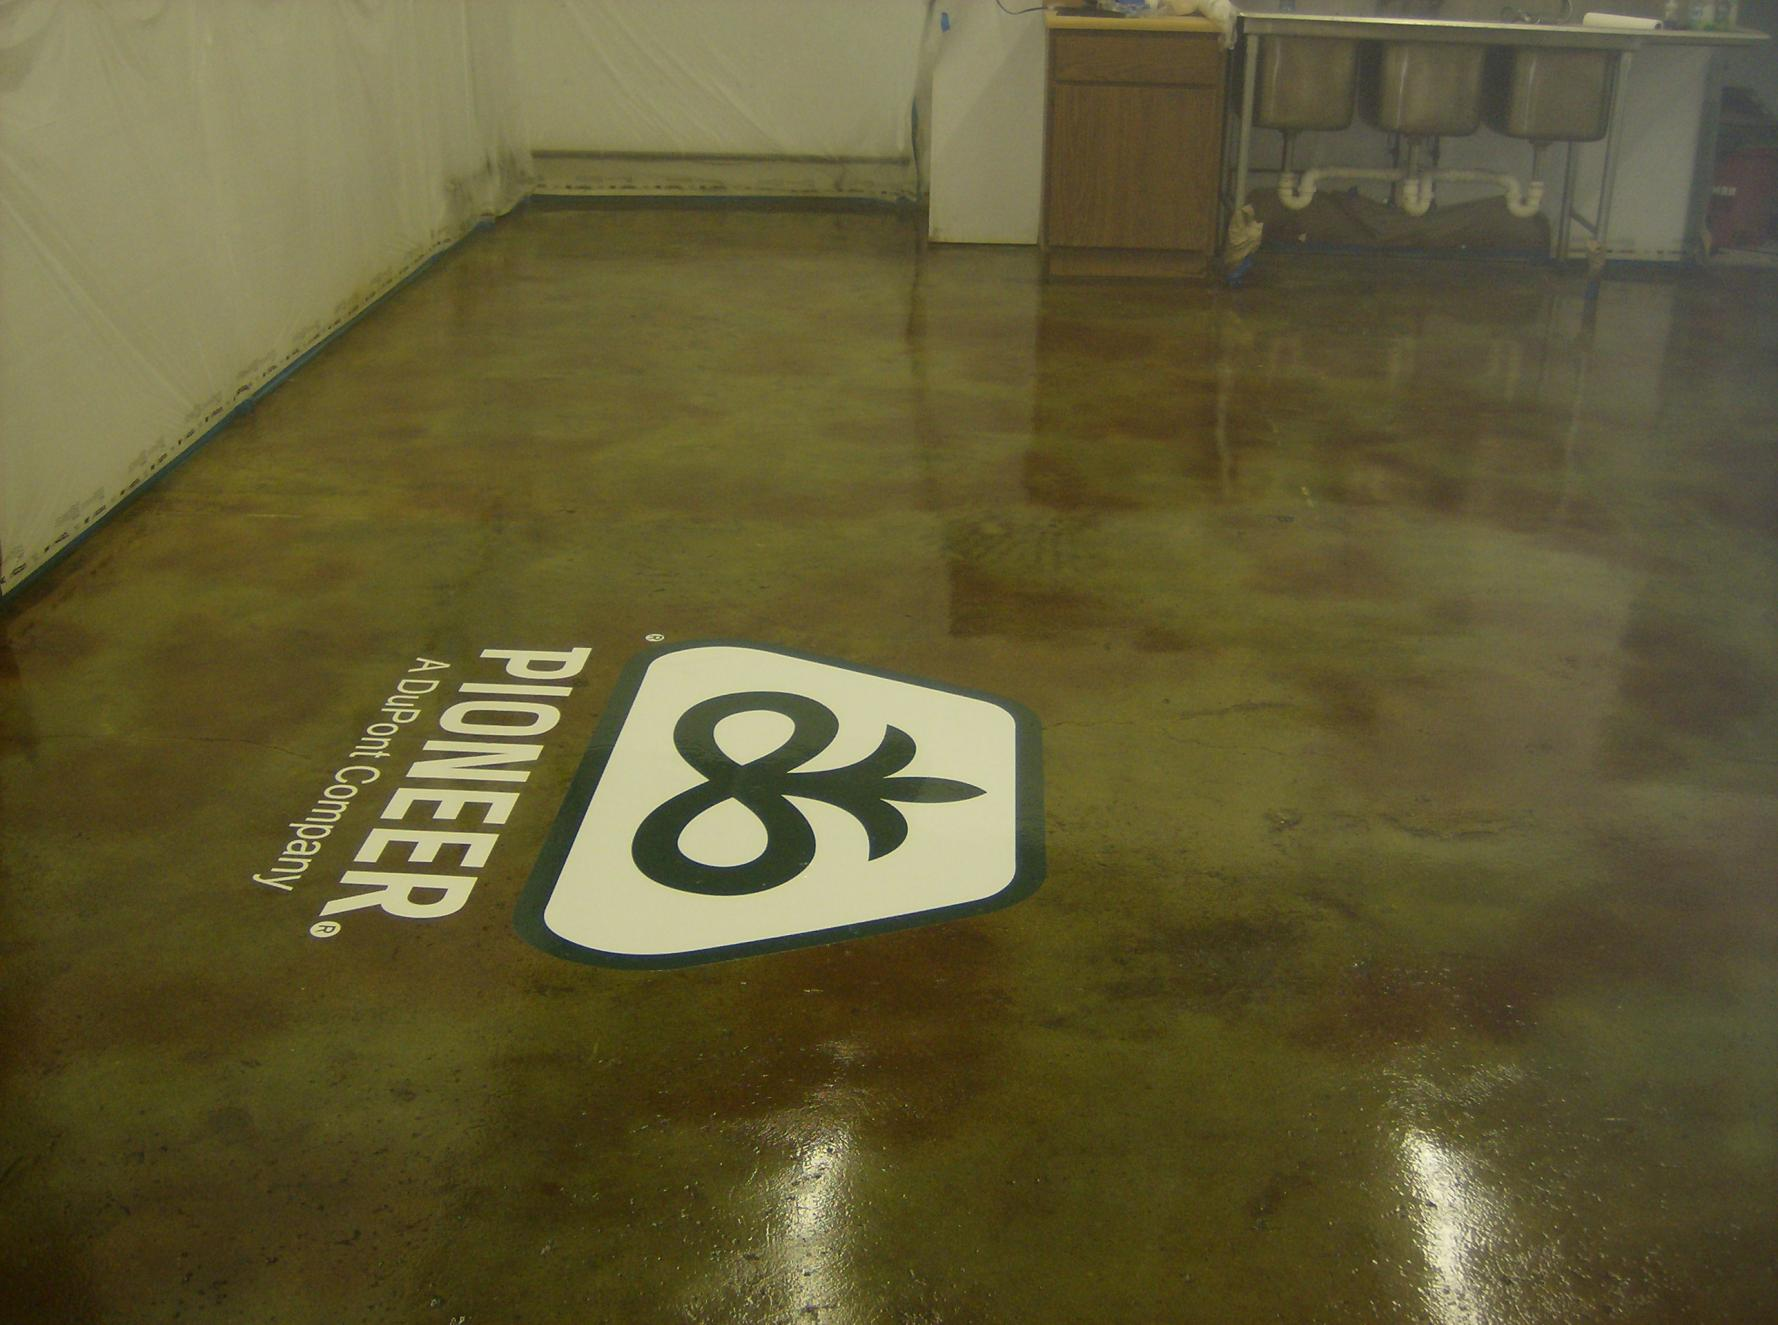 clear chipping off decal-refinishing-111.jpg